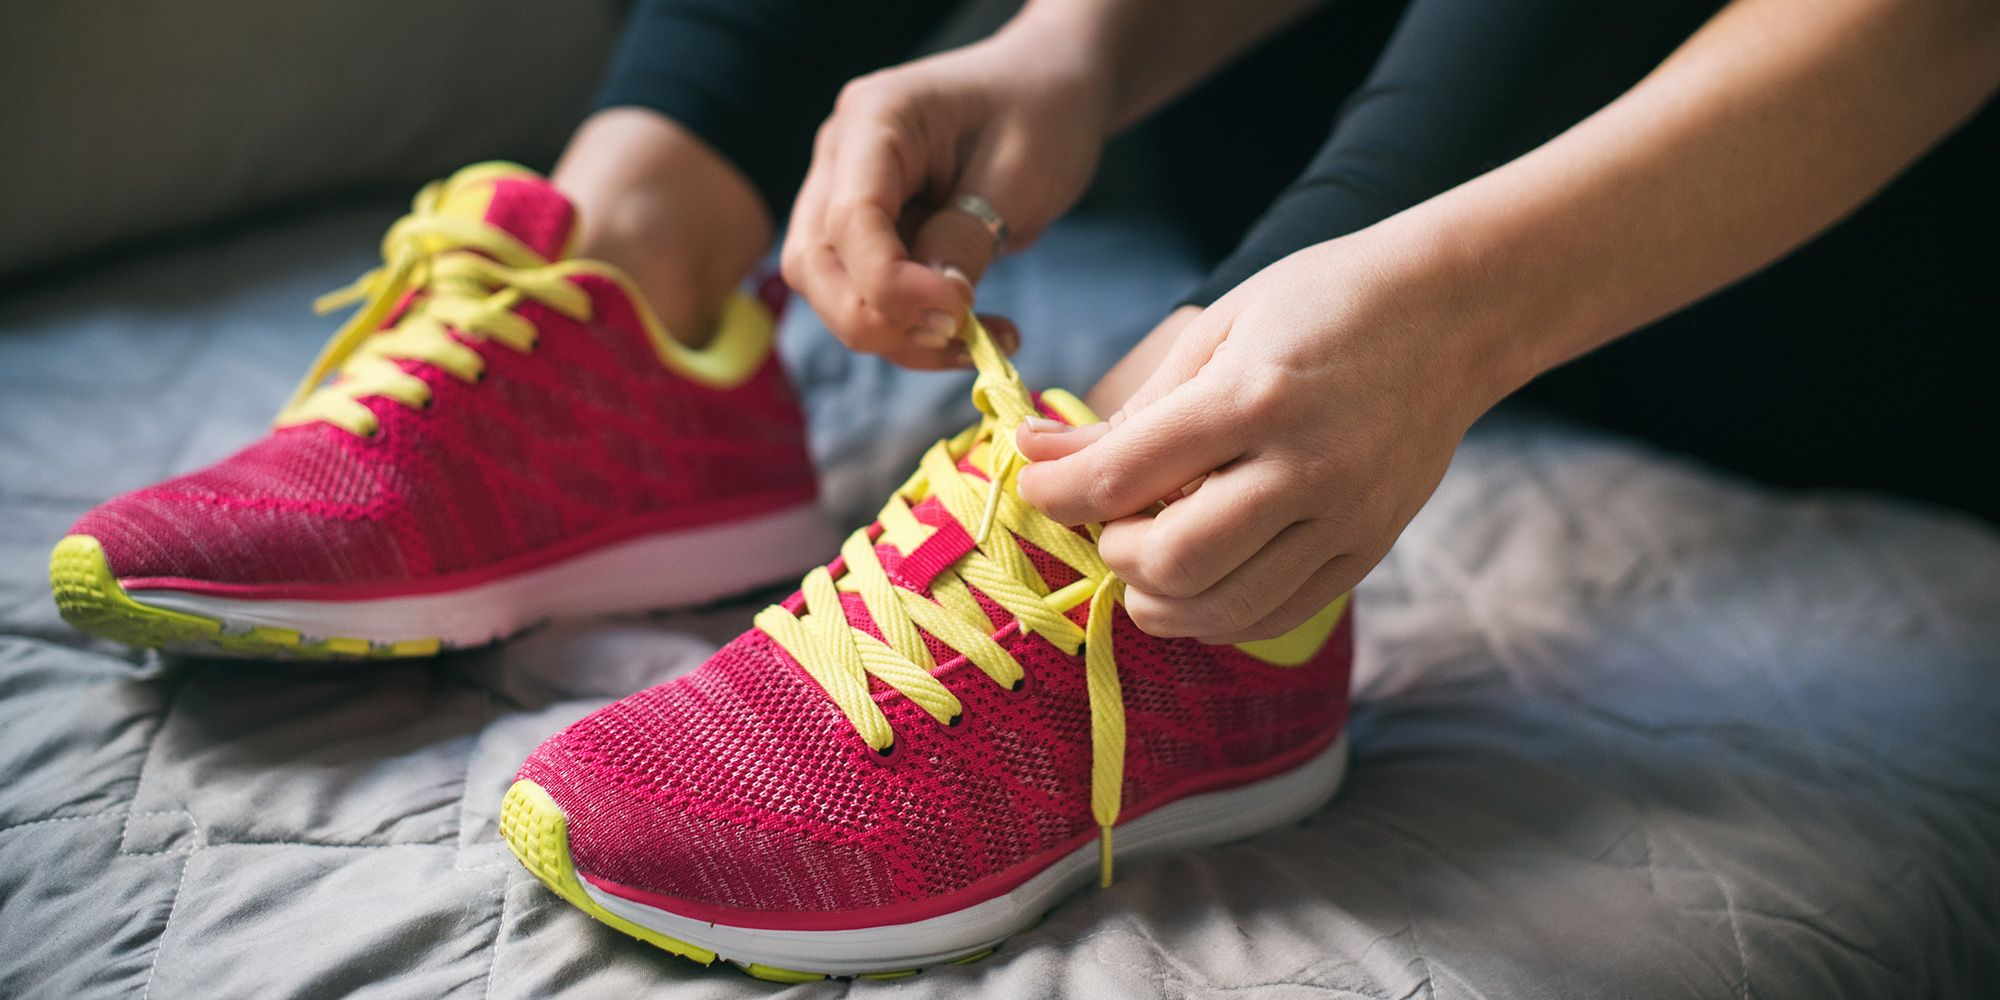 8 foods you should never eat before a workout